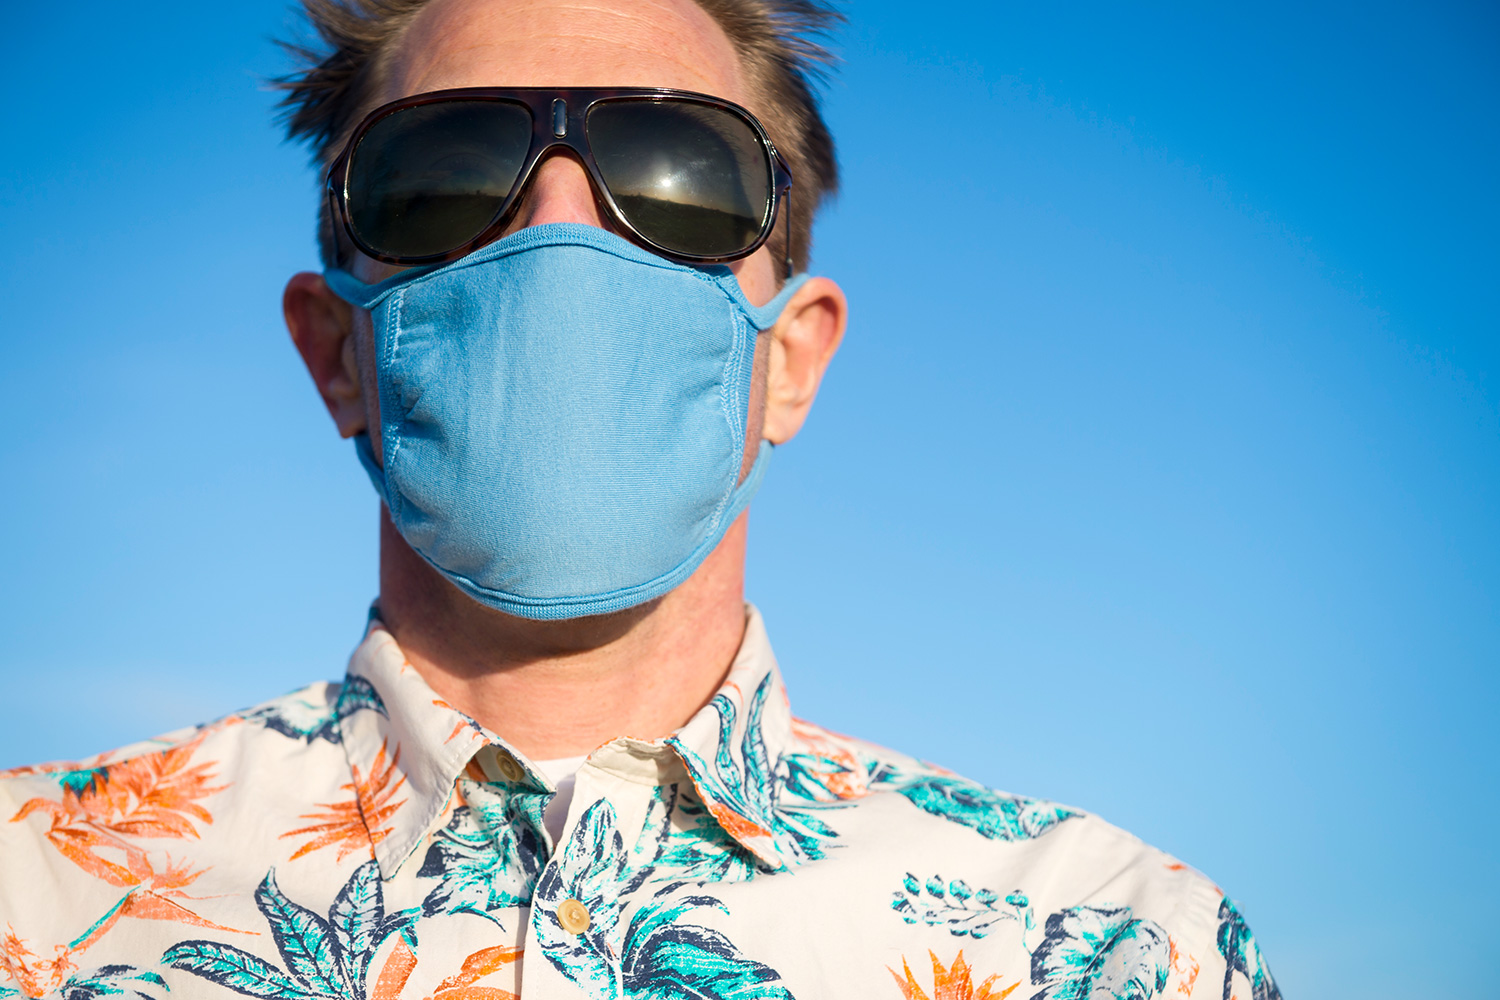 Close up portrait of a man in colorful Hawaiian shirt and sunglasses wearing protective surgical face mask standing outdoors under sunny blue sky